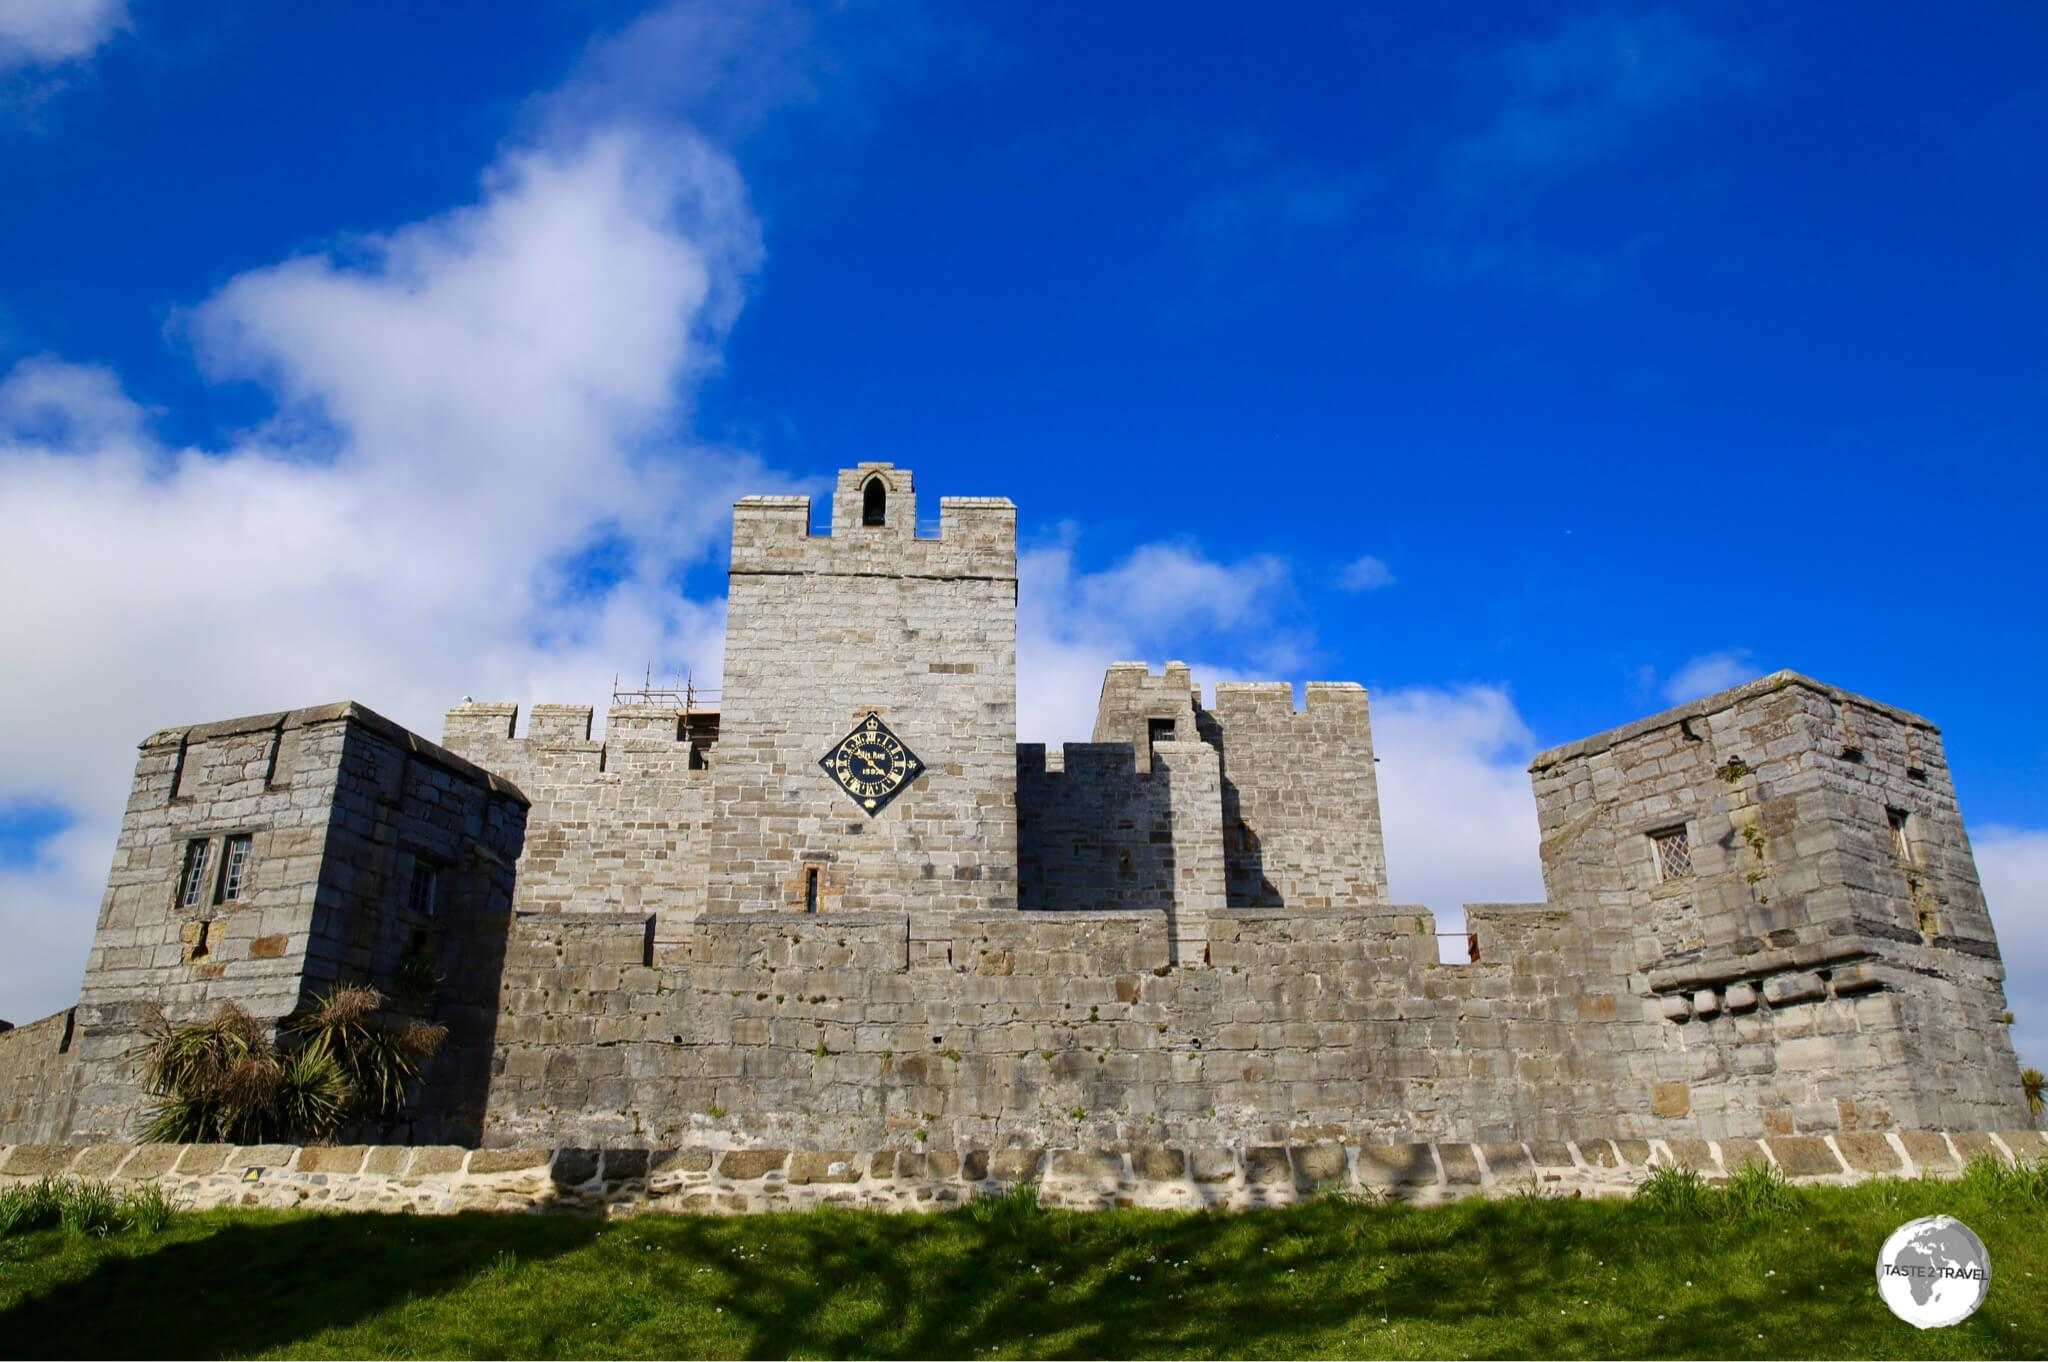 The namesake of Castletown, Castle Rushen dominates the downtown area.